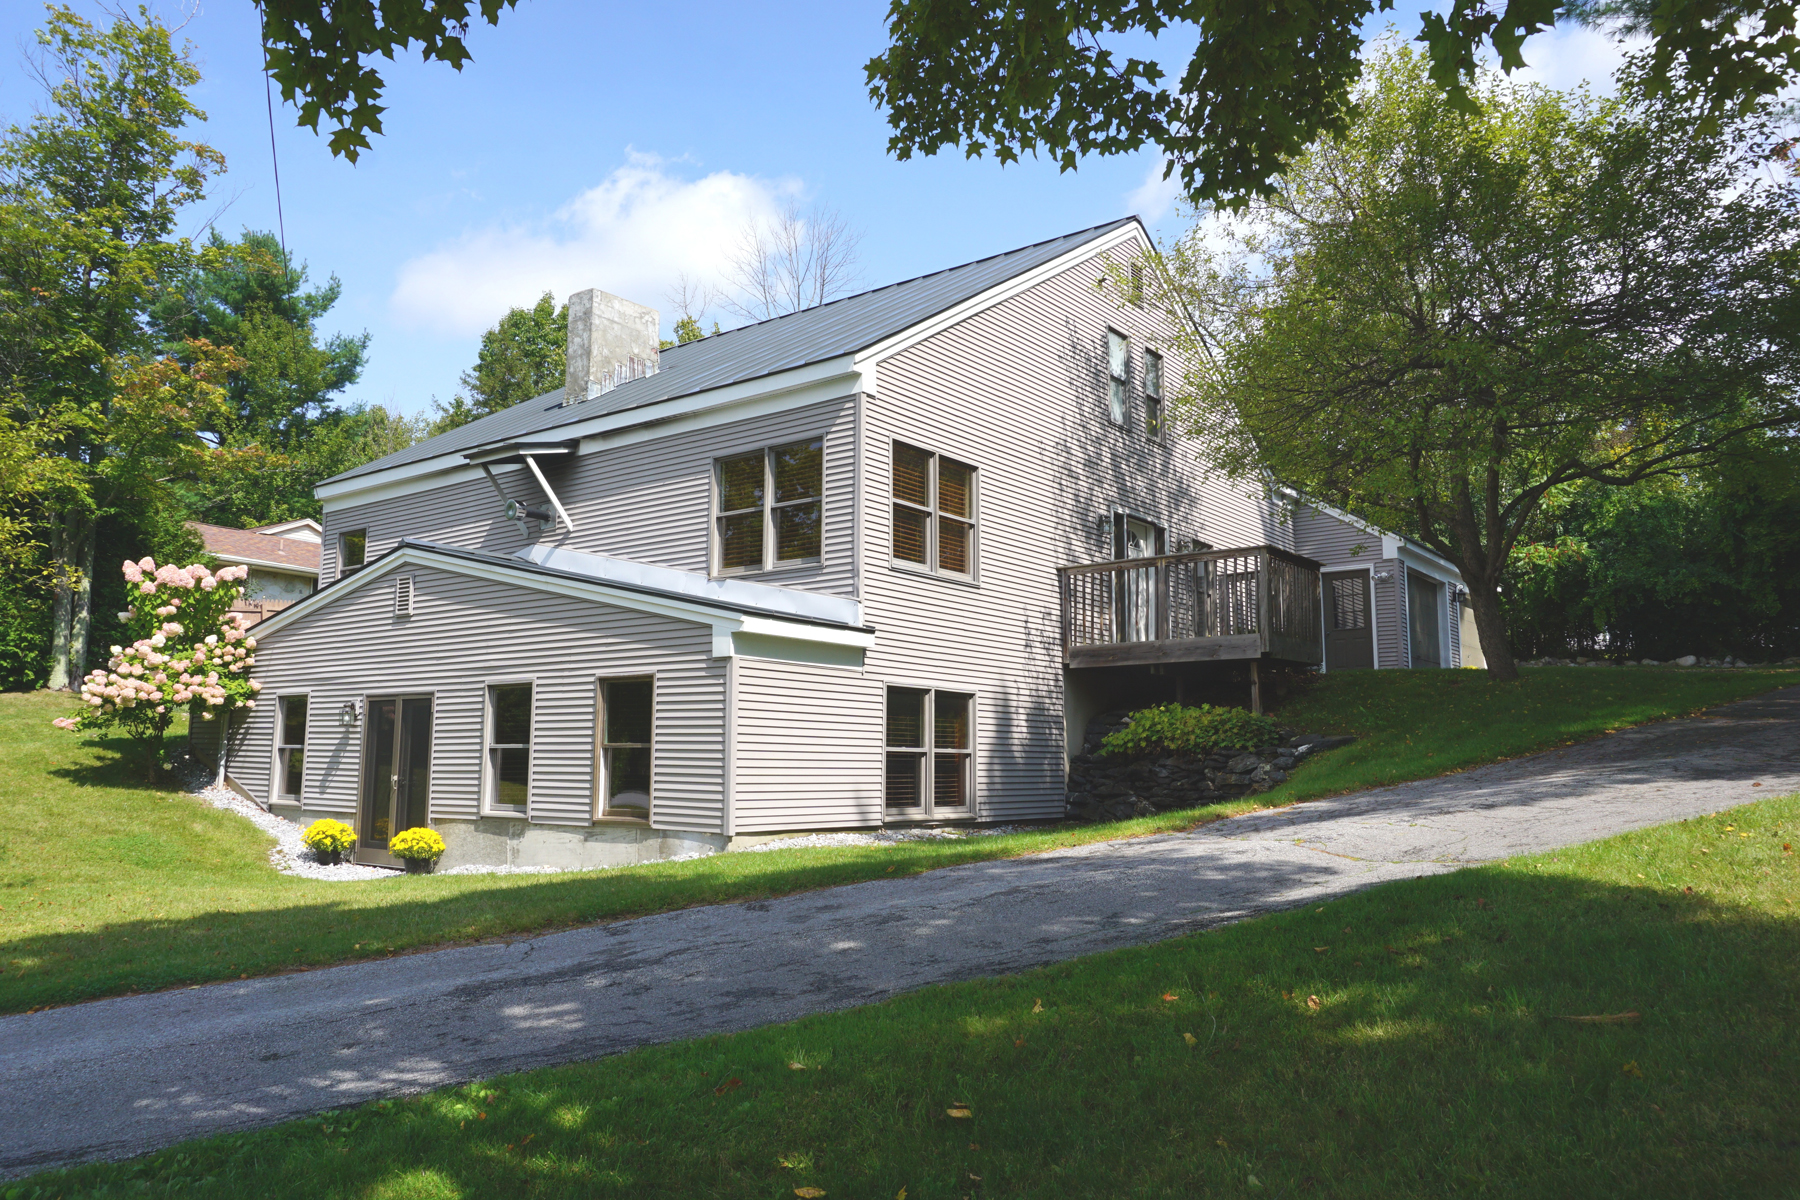 Single Family Homes for Sale at BEAUTIFUL CONTEMPORARY HOME 14 Hilltop Terr Rutland, Vermont 05701 United States